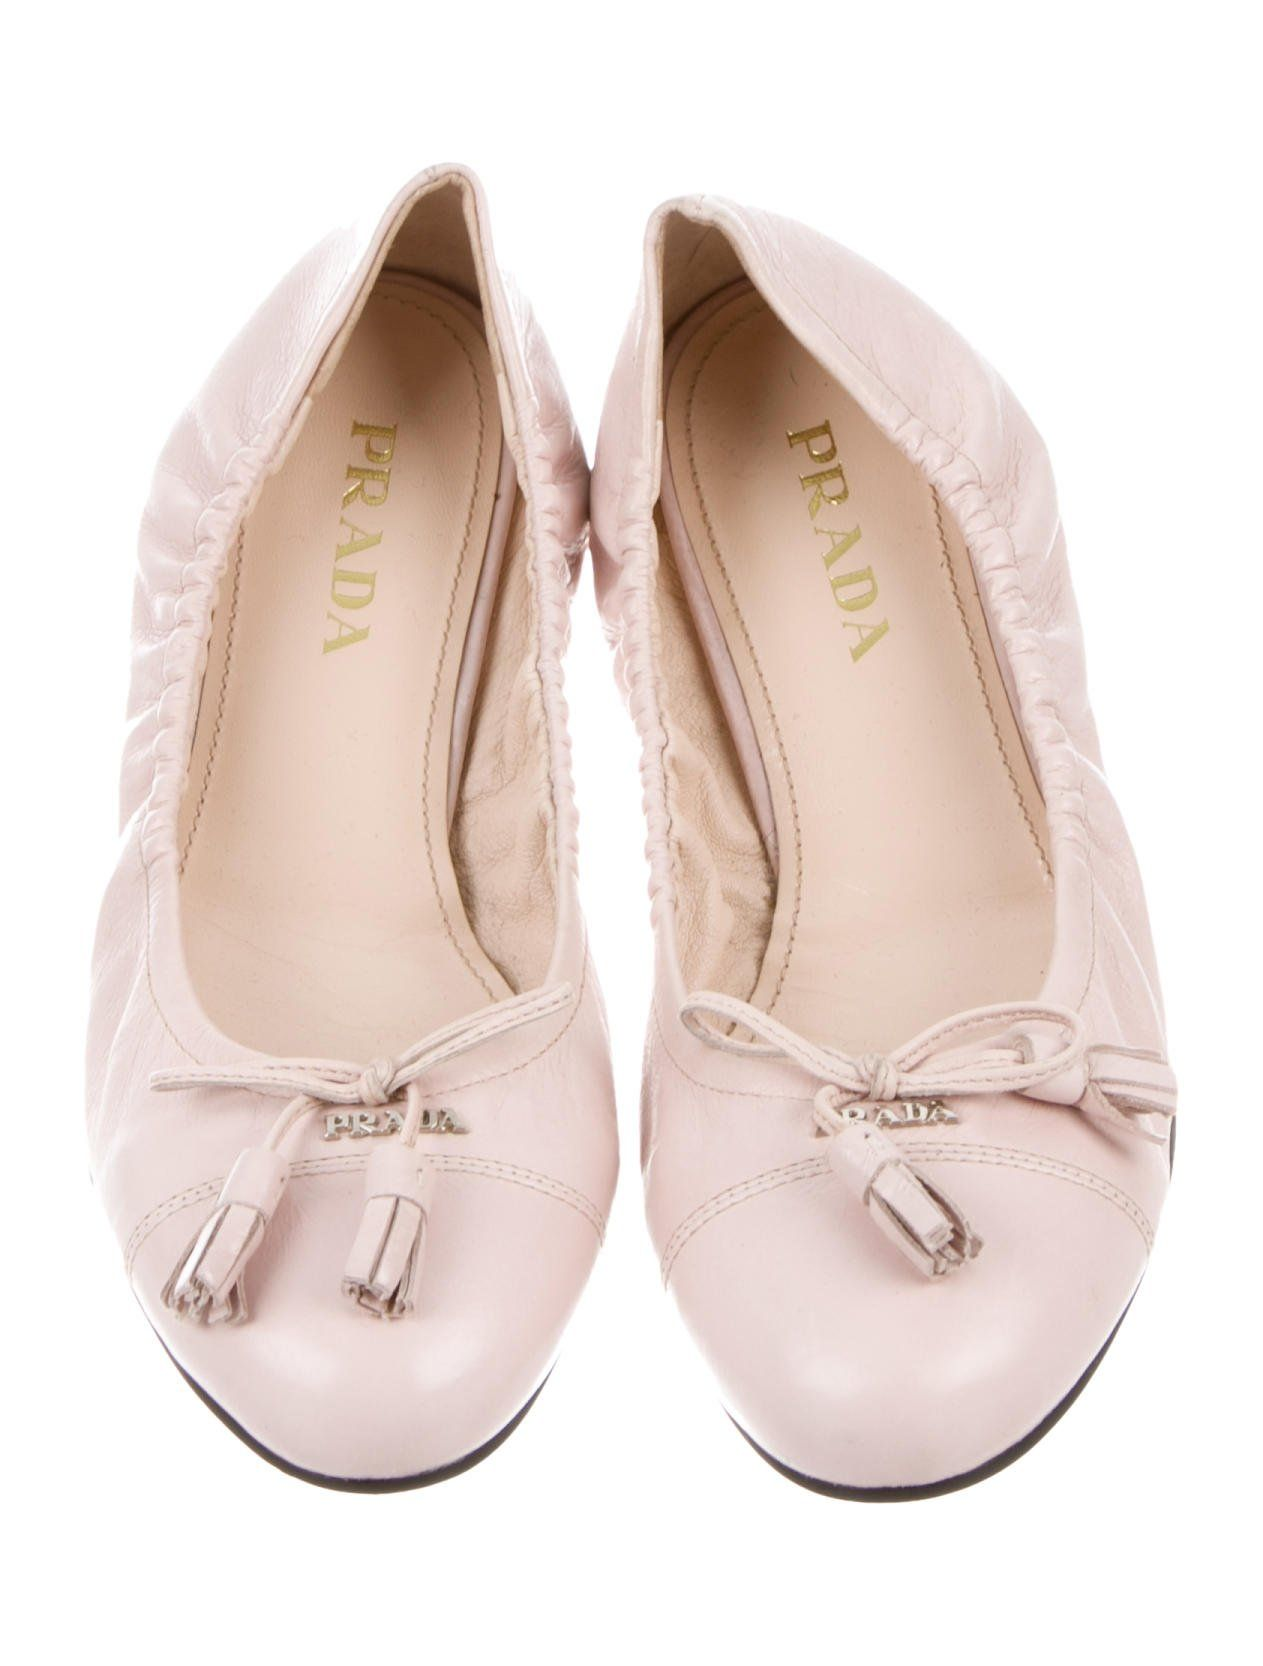 18ec4767d9 Pink leather Prada round-toe ballet flats with bow accent at vamps  featuring logo embellishment, contrast stitching and rubber heels.prada #flats#ballet# ...